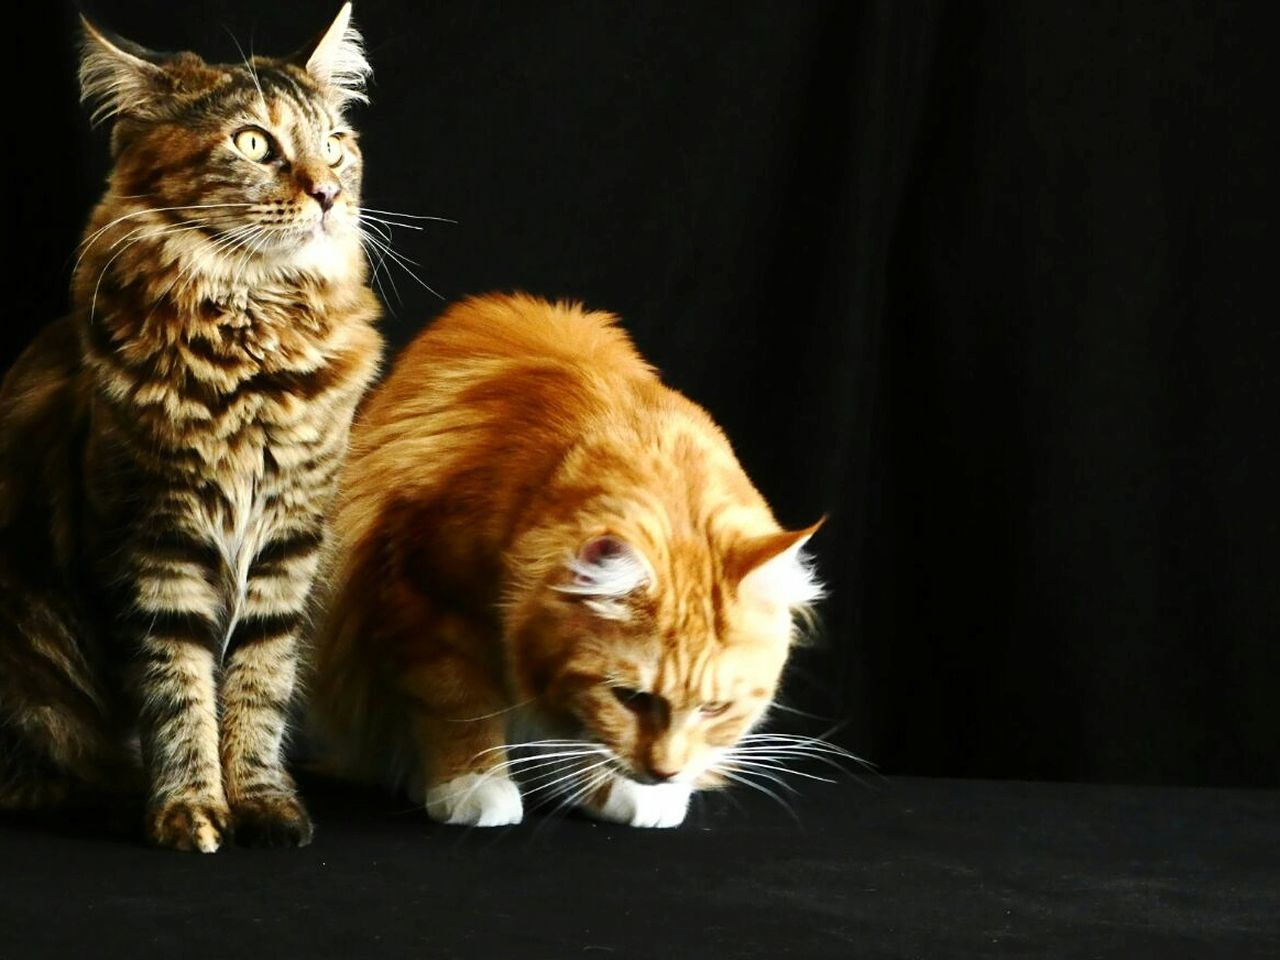 Chatons Chats Black Background Animal Themes Mammal Portrait Animal Hair Whisker Feline Kitten Paw Home Is Where My Cat Is Love My Cat Catladies Domestic Cat Cats Of EyeEm Maine Coon Cats Home Is Where The Cat Is Cats Of The Day Love My Cats Place Of Heart Mother & Daughter